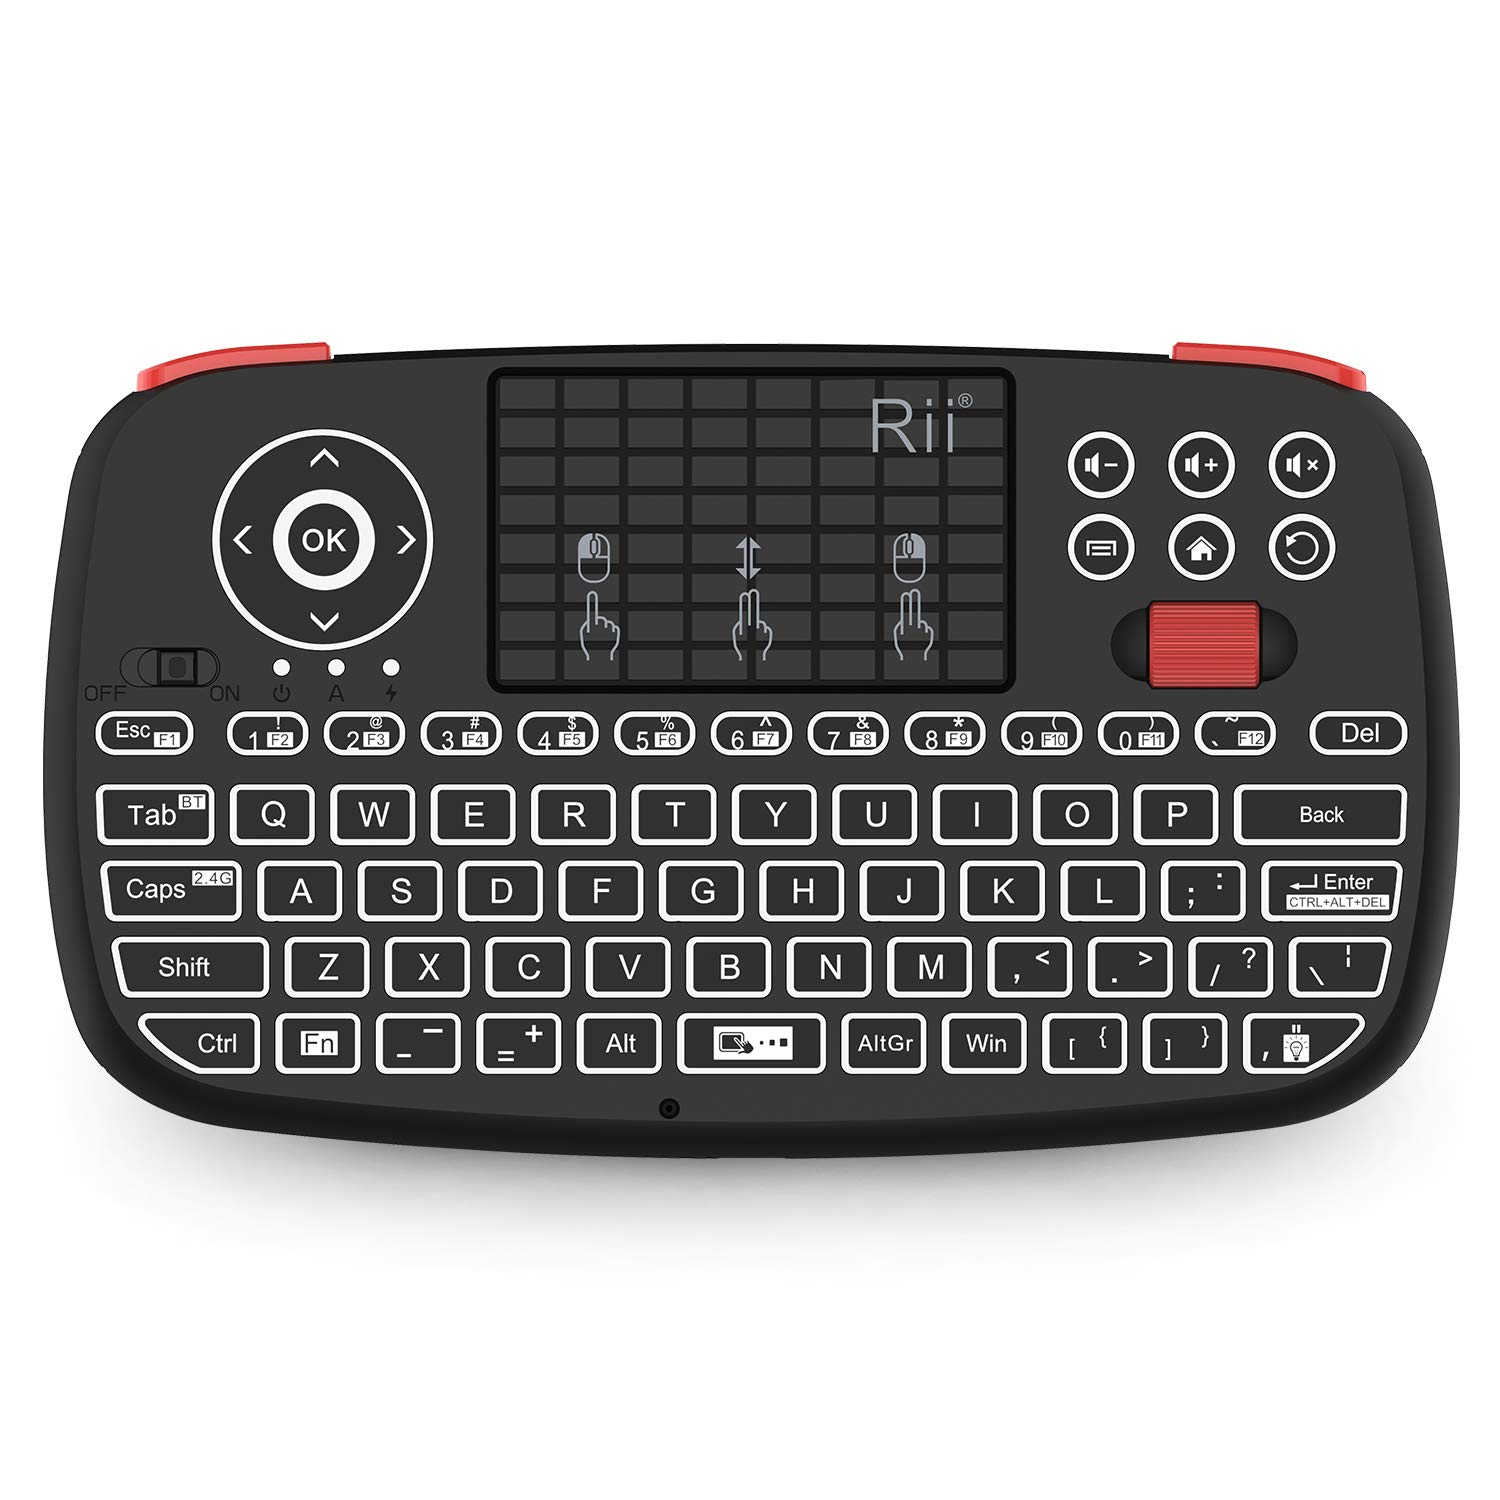 (2019 Upgrade) Rii i4 Mini Bluetooth Keyboard with Touchpad, Blacklit Portable Wireless Keyboard with 2.4G USB Dongle for Smartphones, PC, Tablet, Laptop TV Box iOS Android Windows Mac.Black 714tPSLcPAL